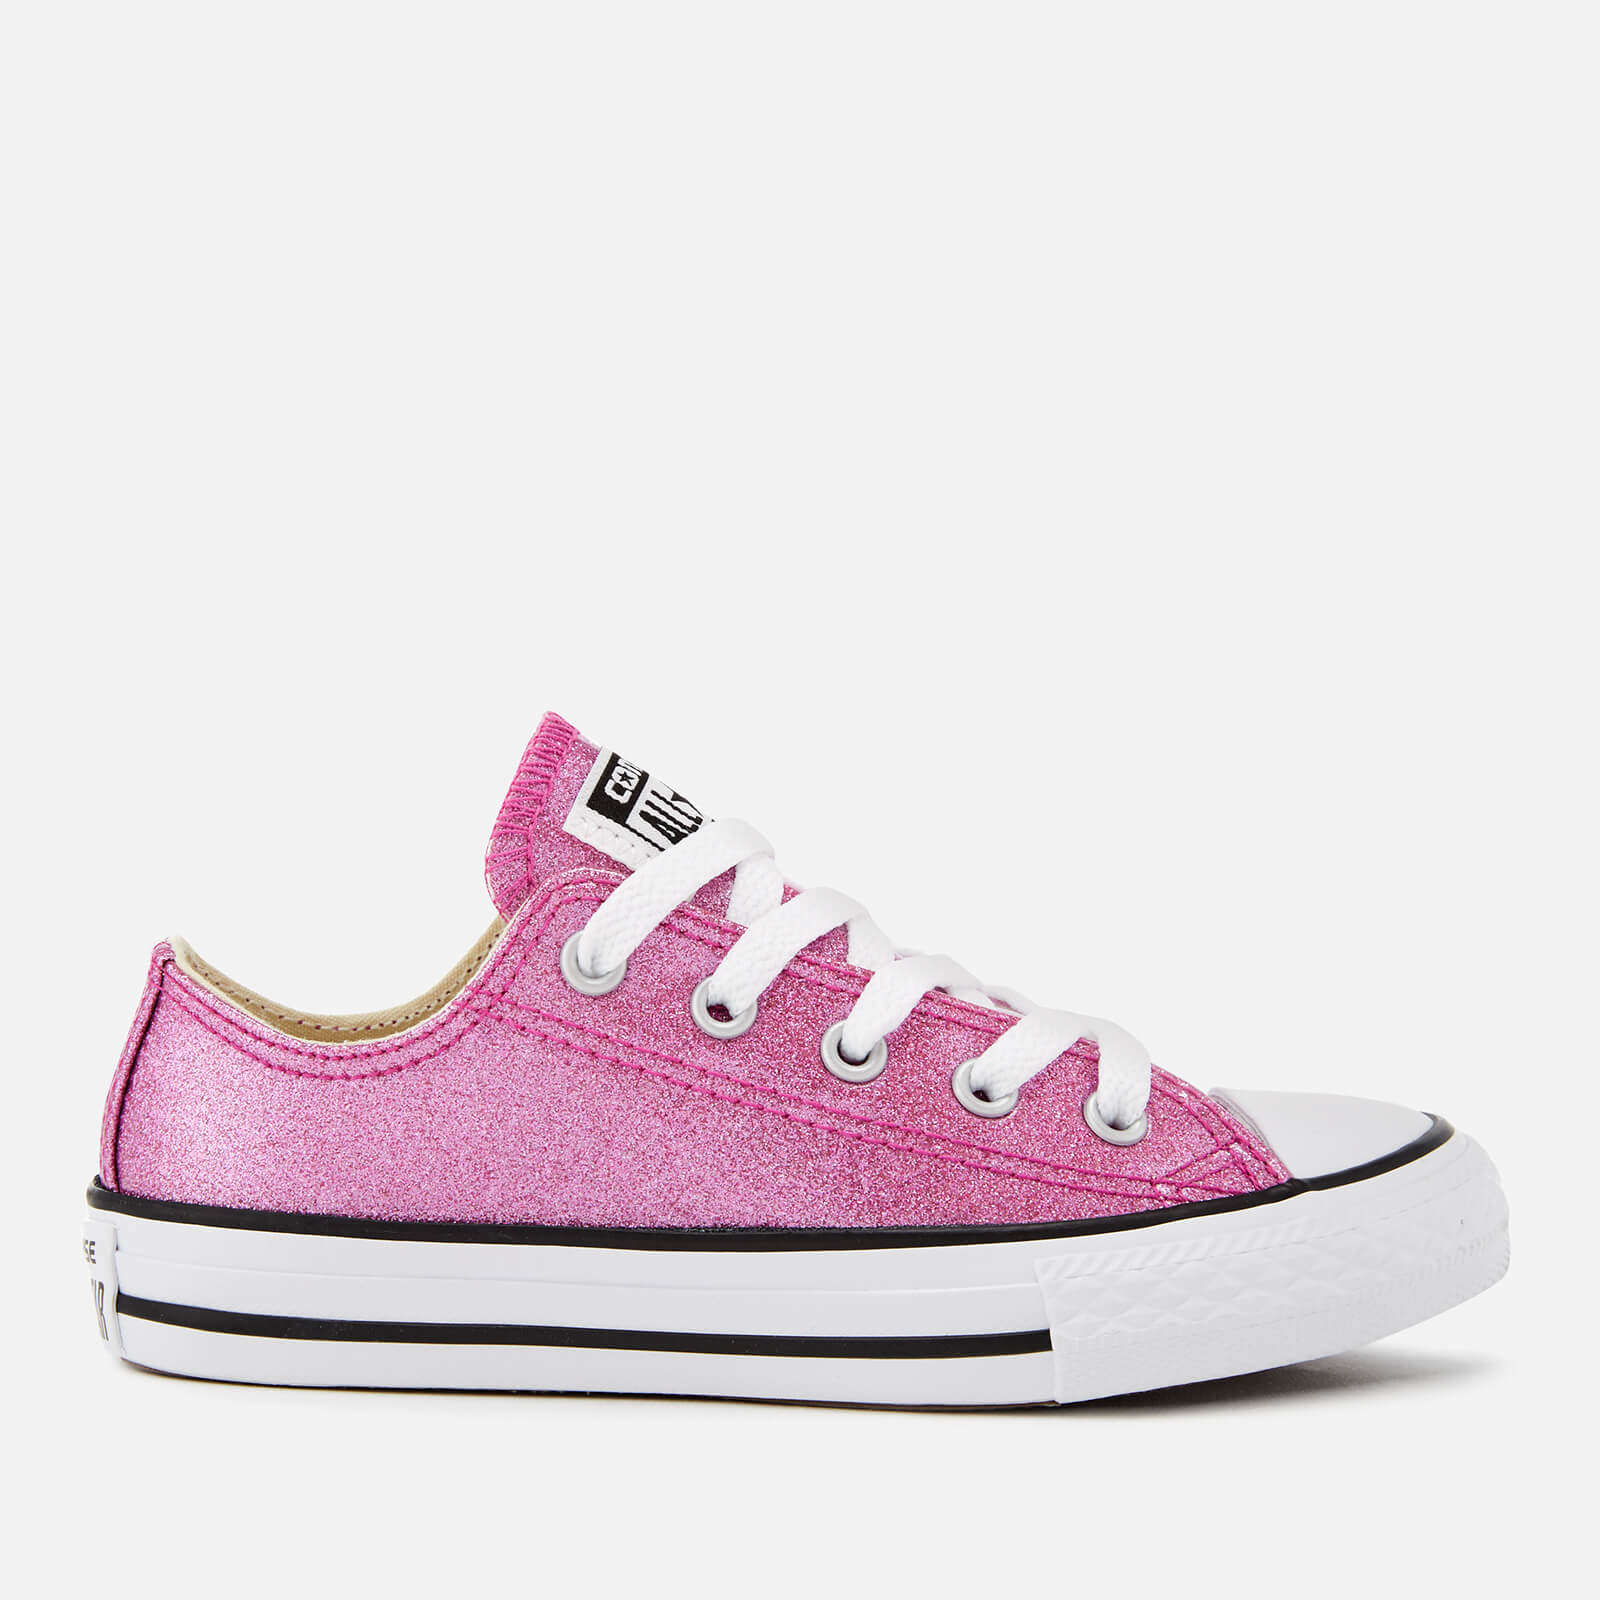 41d9f2360fb1 Converse Kids  Chuck Taylor All Star Ox Trainers - Bright  Violet Natural White Junior Clothing